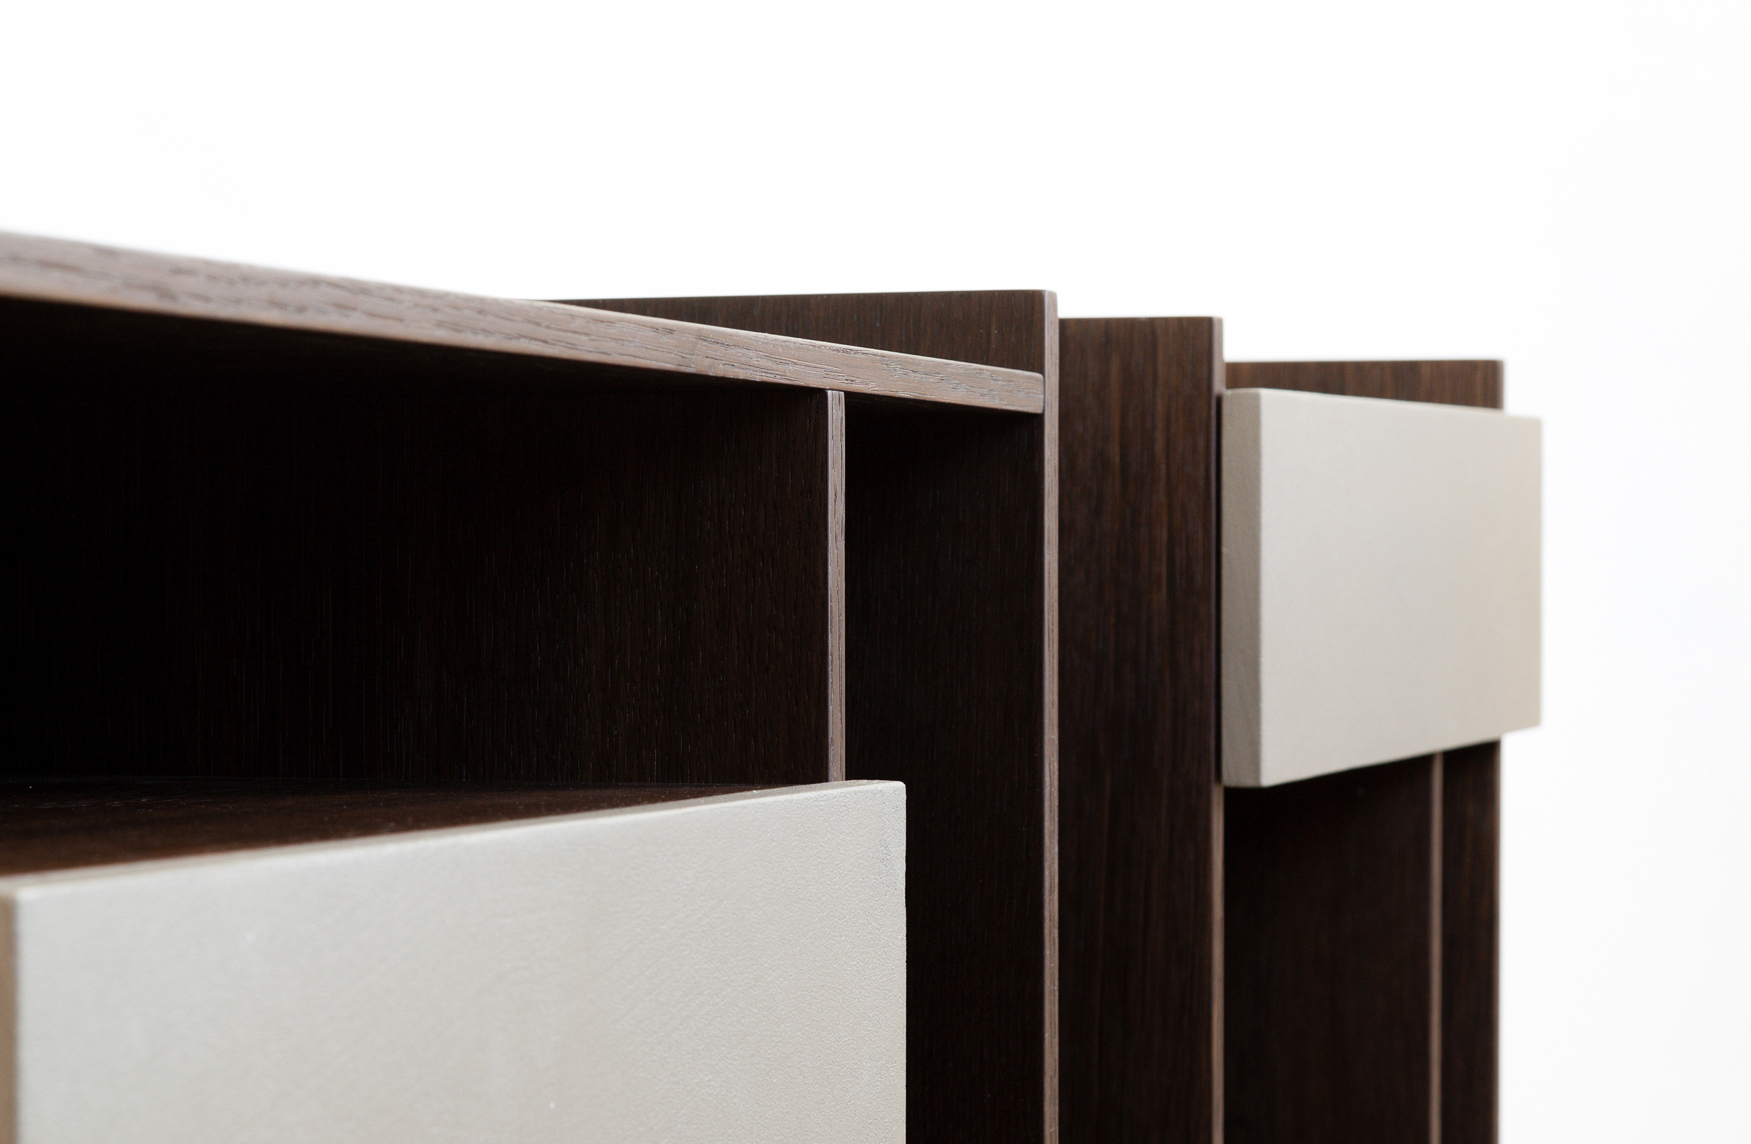 Detail of the Tip drawer units by Debiasi Sandri for Lema